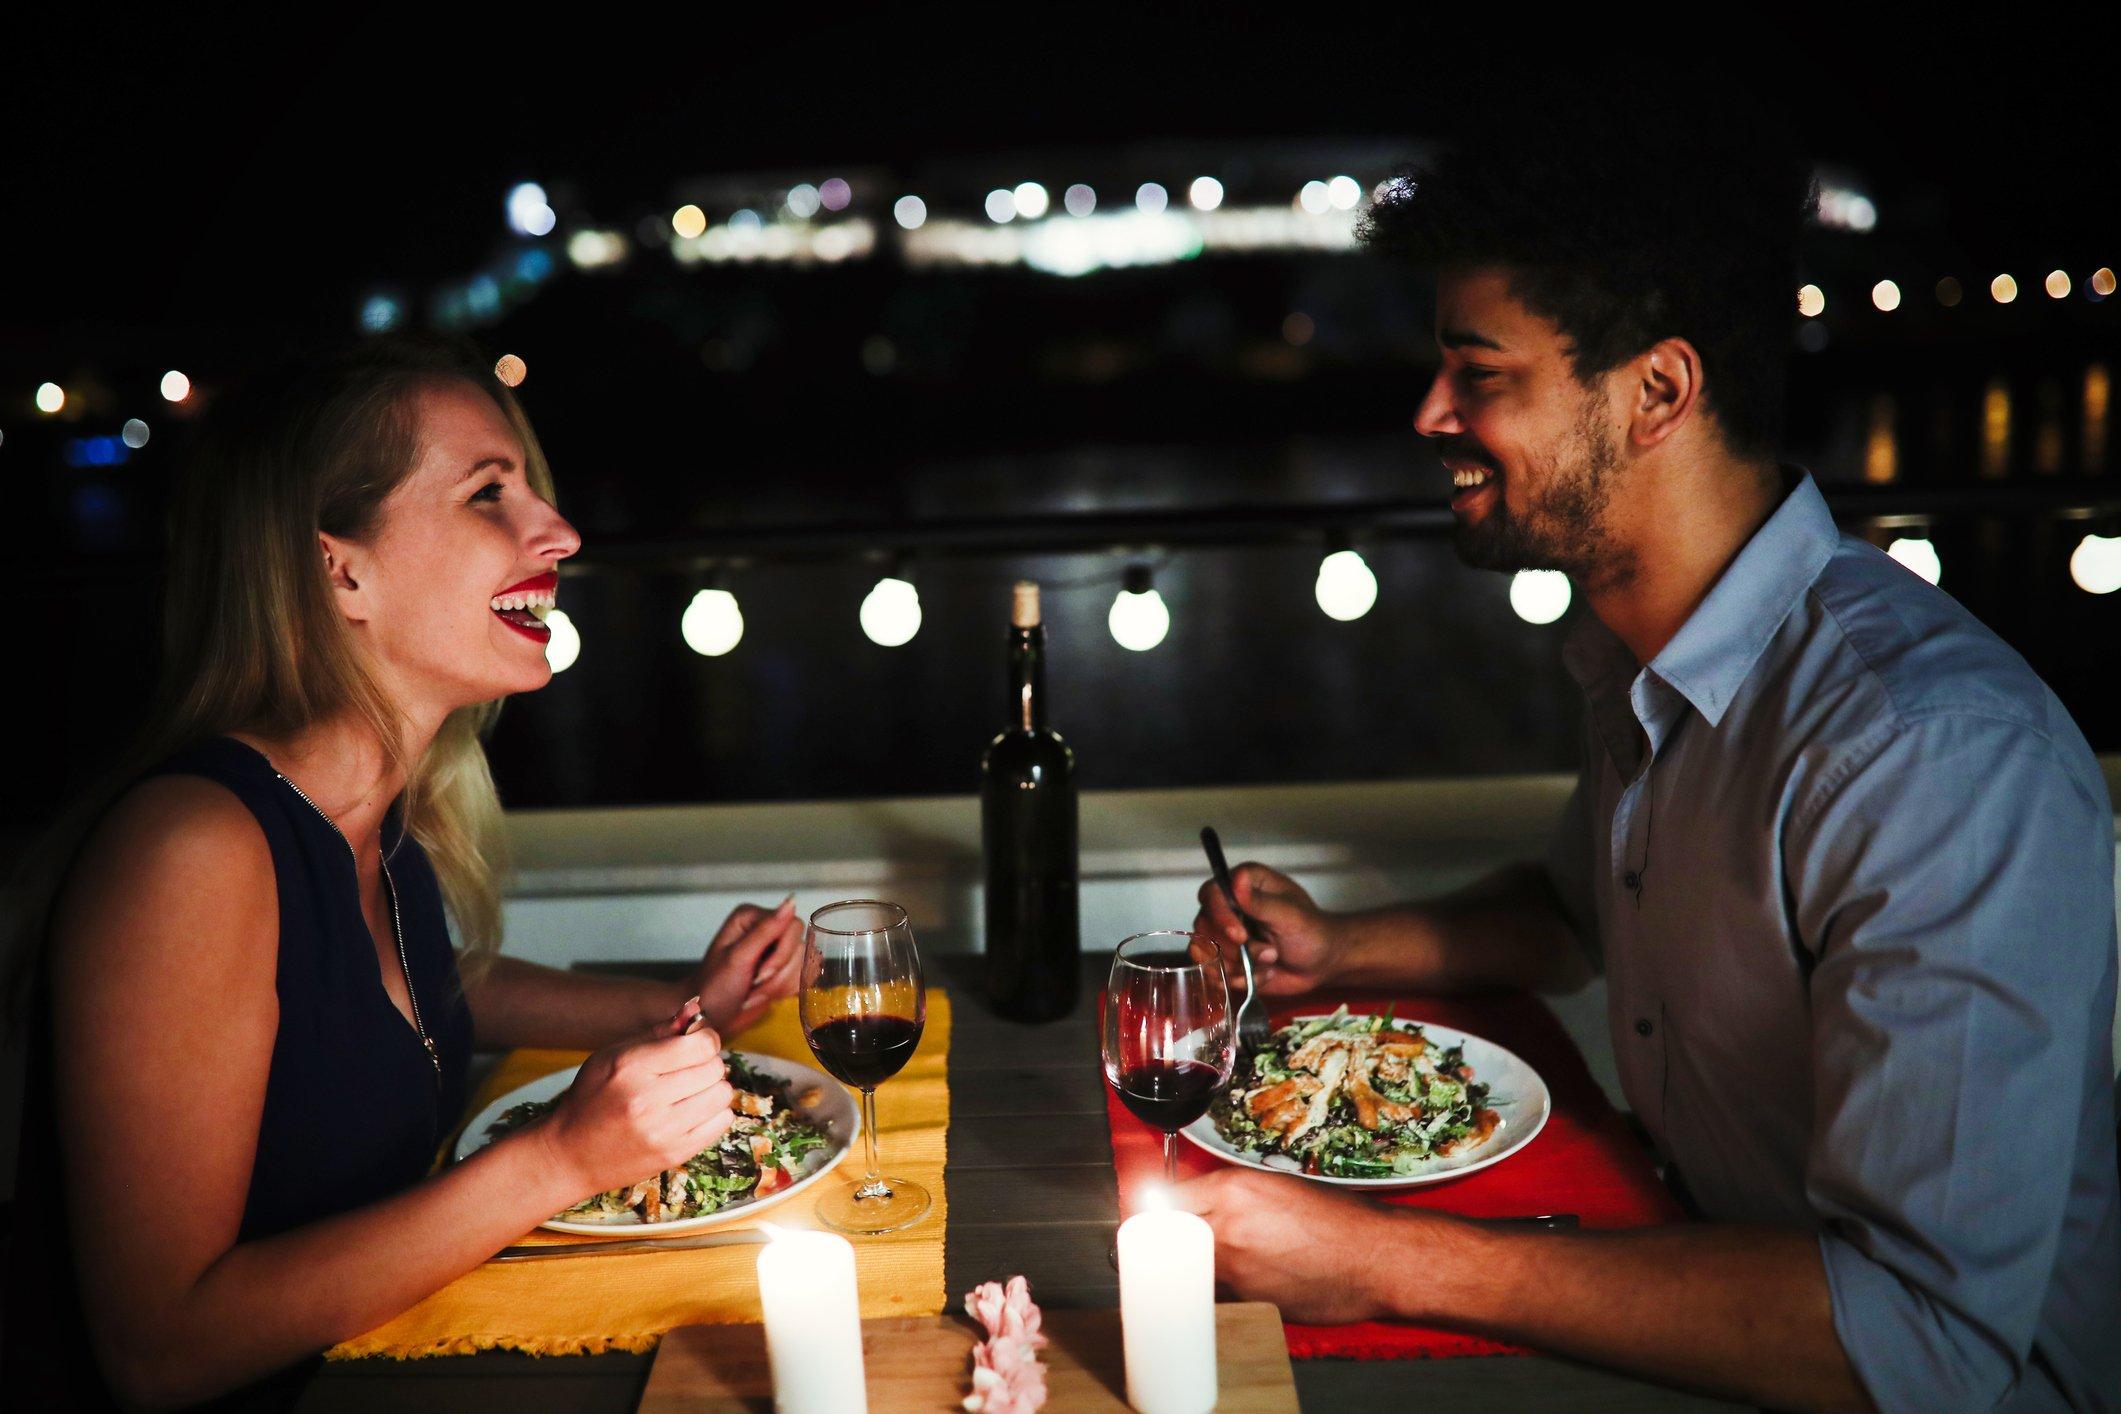 young man and woman sitting at table eating dinner and laughing